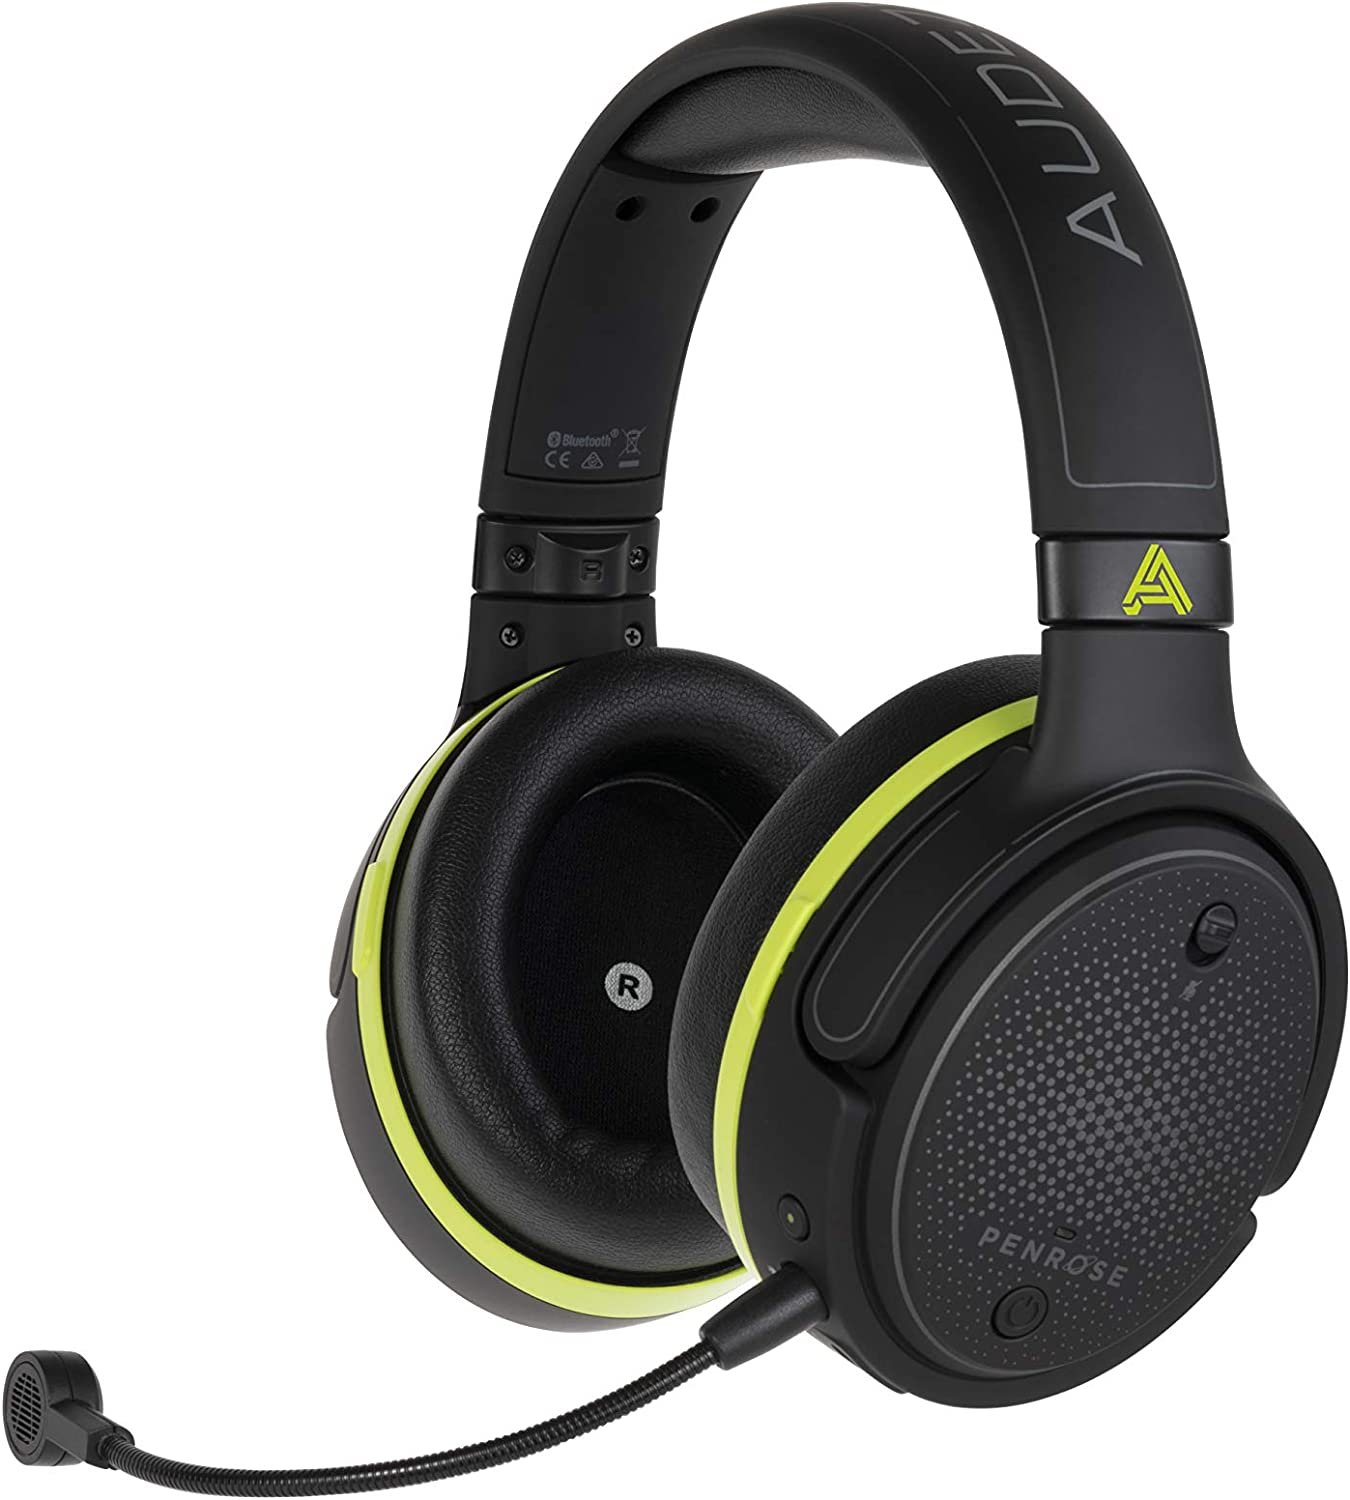 Audeze Penrose Cheap bargain X Wireless Gaming Series for Headset NEW Xbox